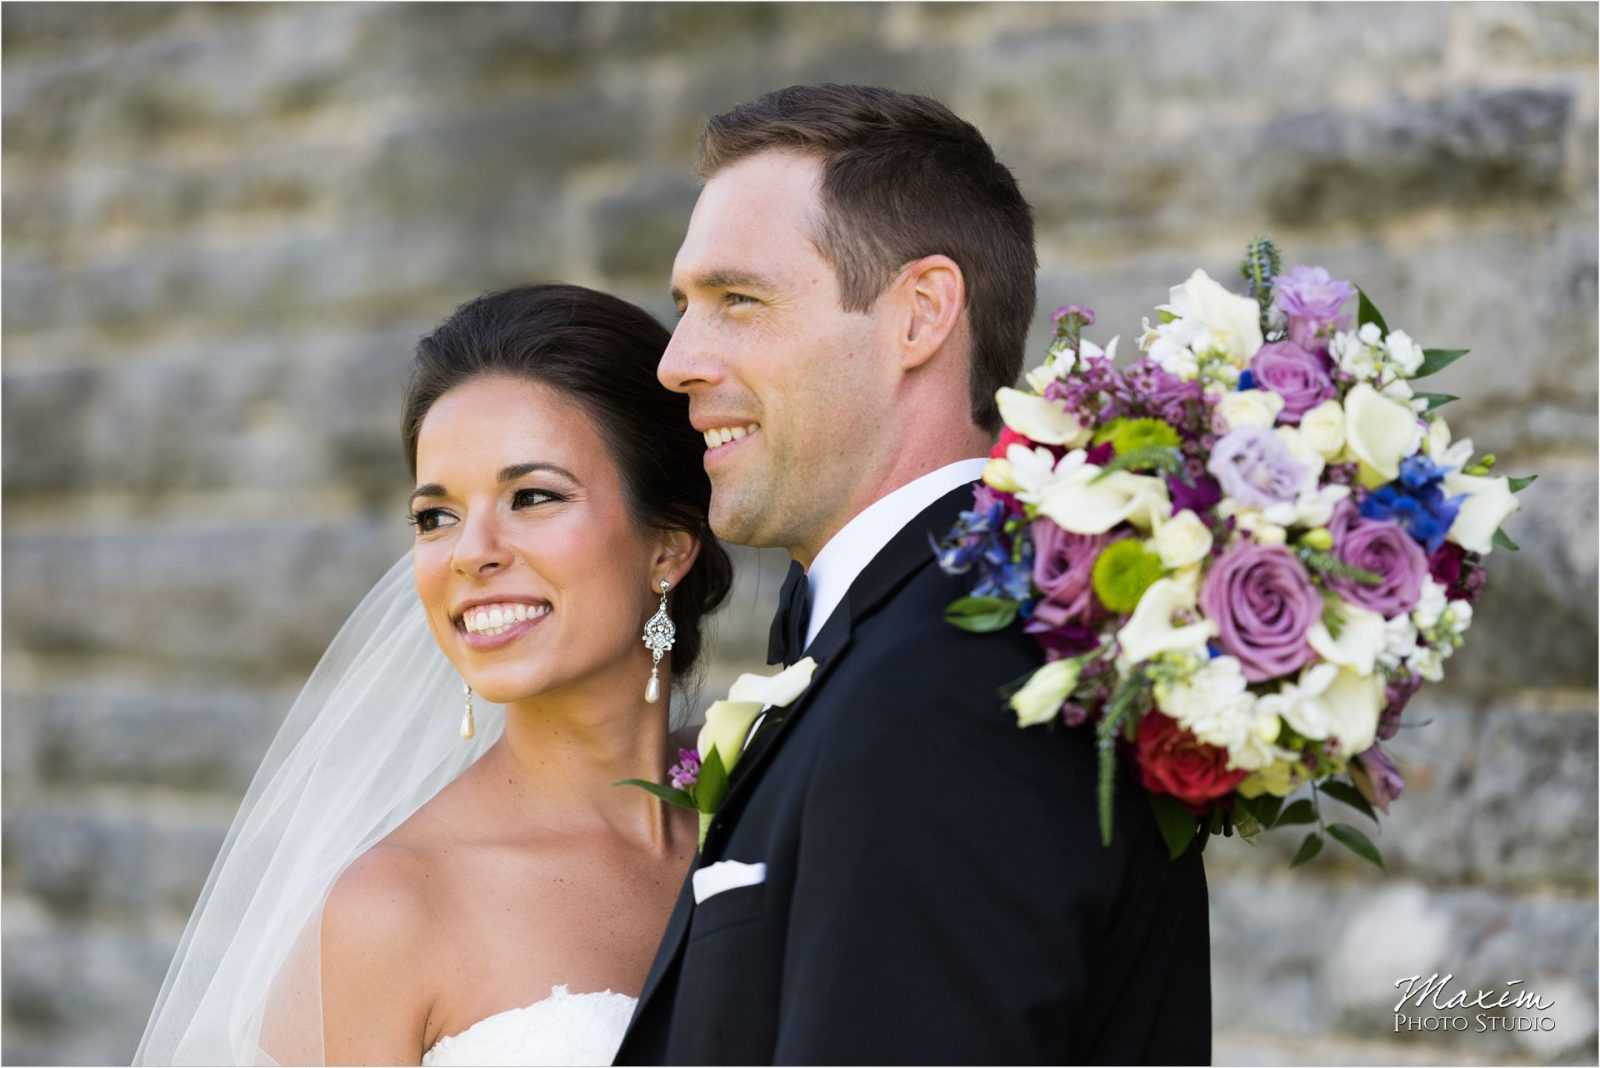 Eden Park Cincinnati Wedding Bride Groom